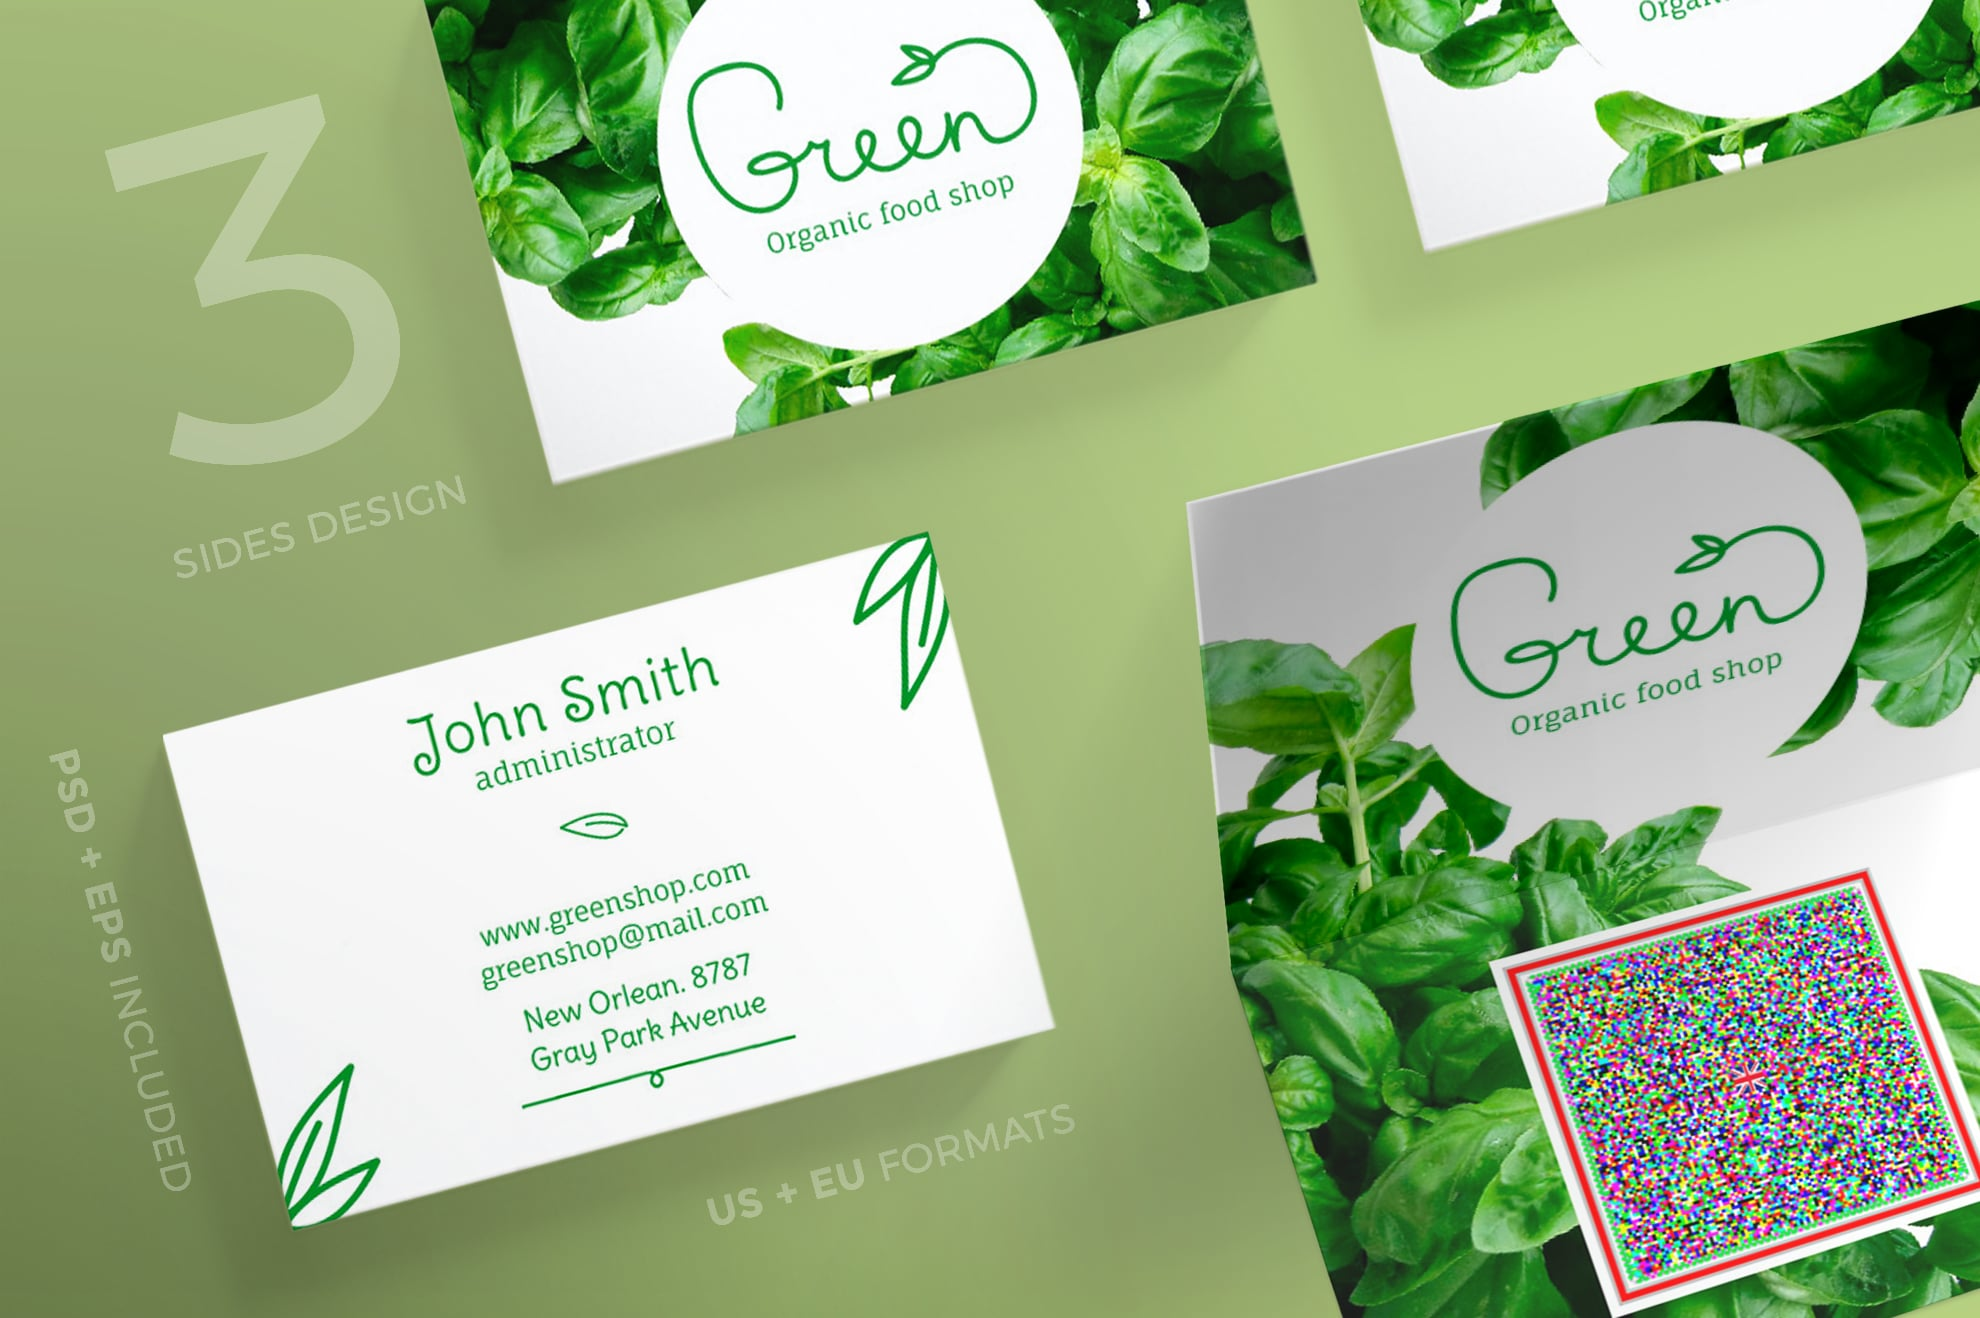 110 in 1 Business Card Bundle - 026 bc green shop 50 0